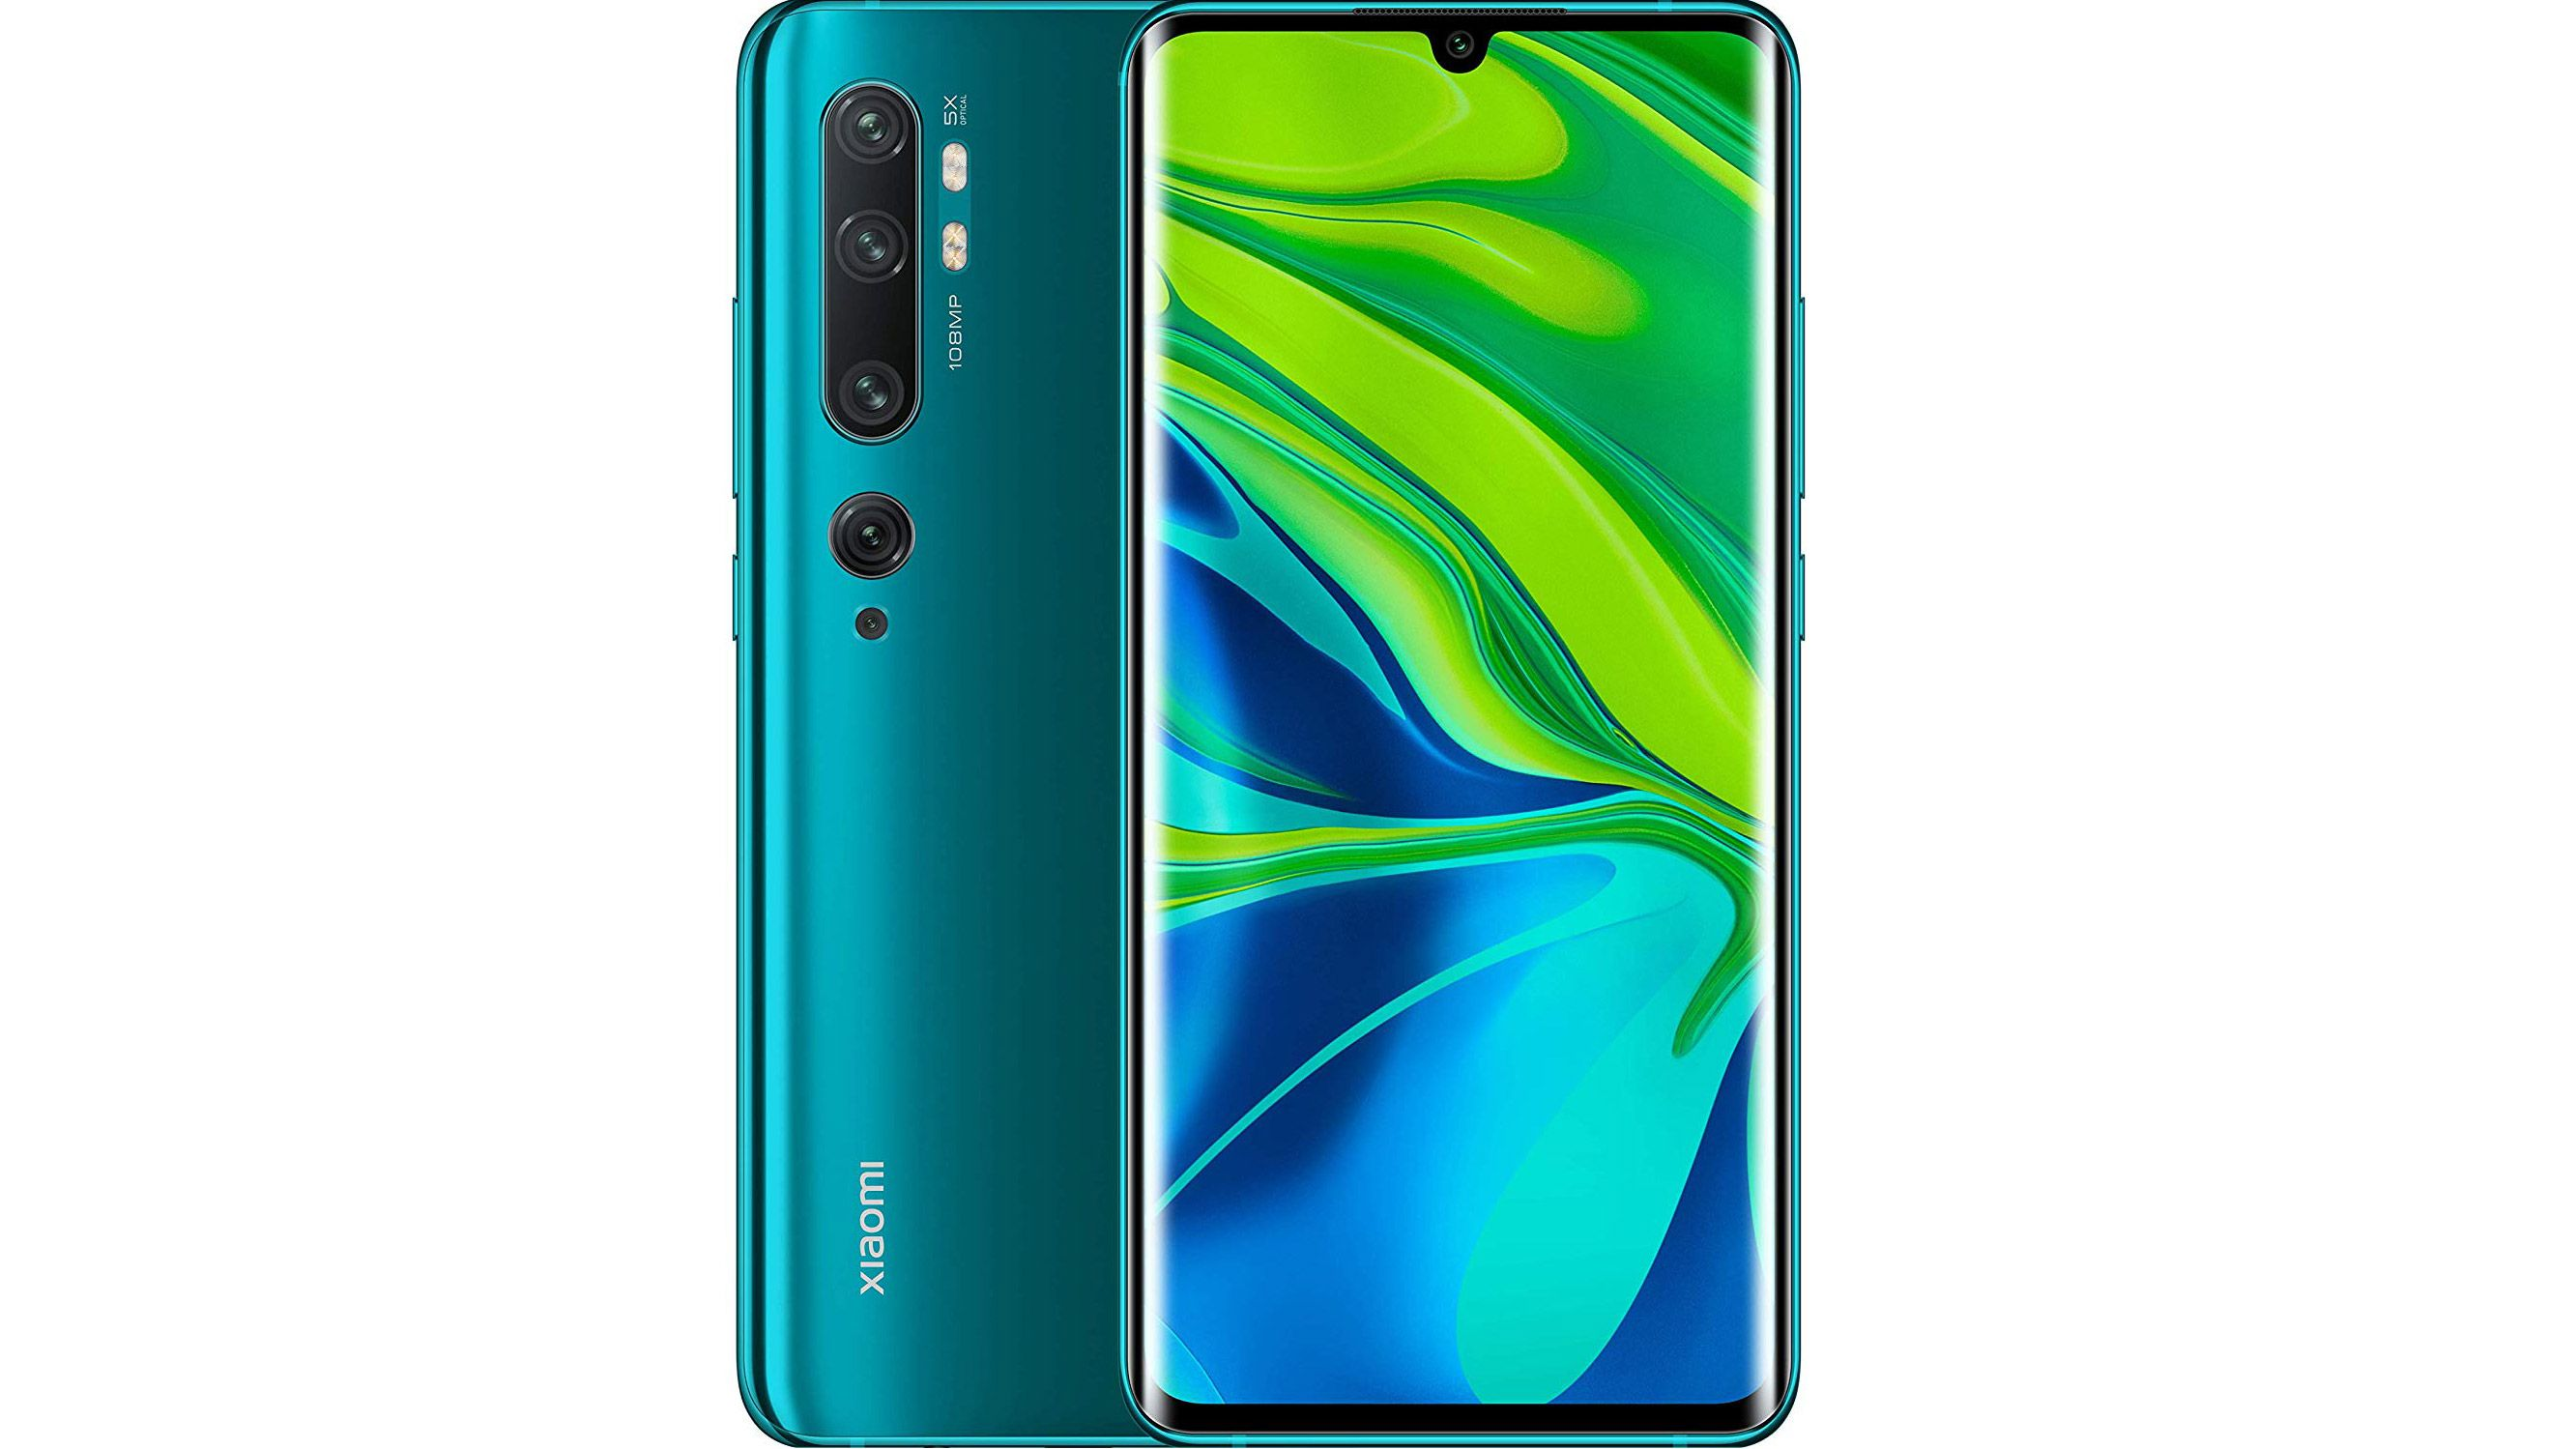 Best Camera Phone 2020 Our Picks For The Best Smartphone Cameras Right Now In 2020 Top Smartphones Camera Phone Best Smartphone Camera